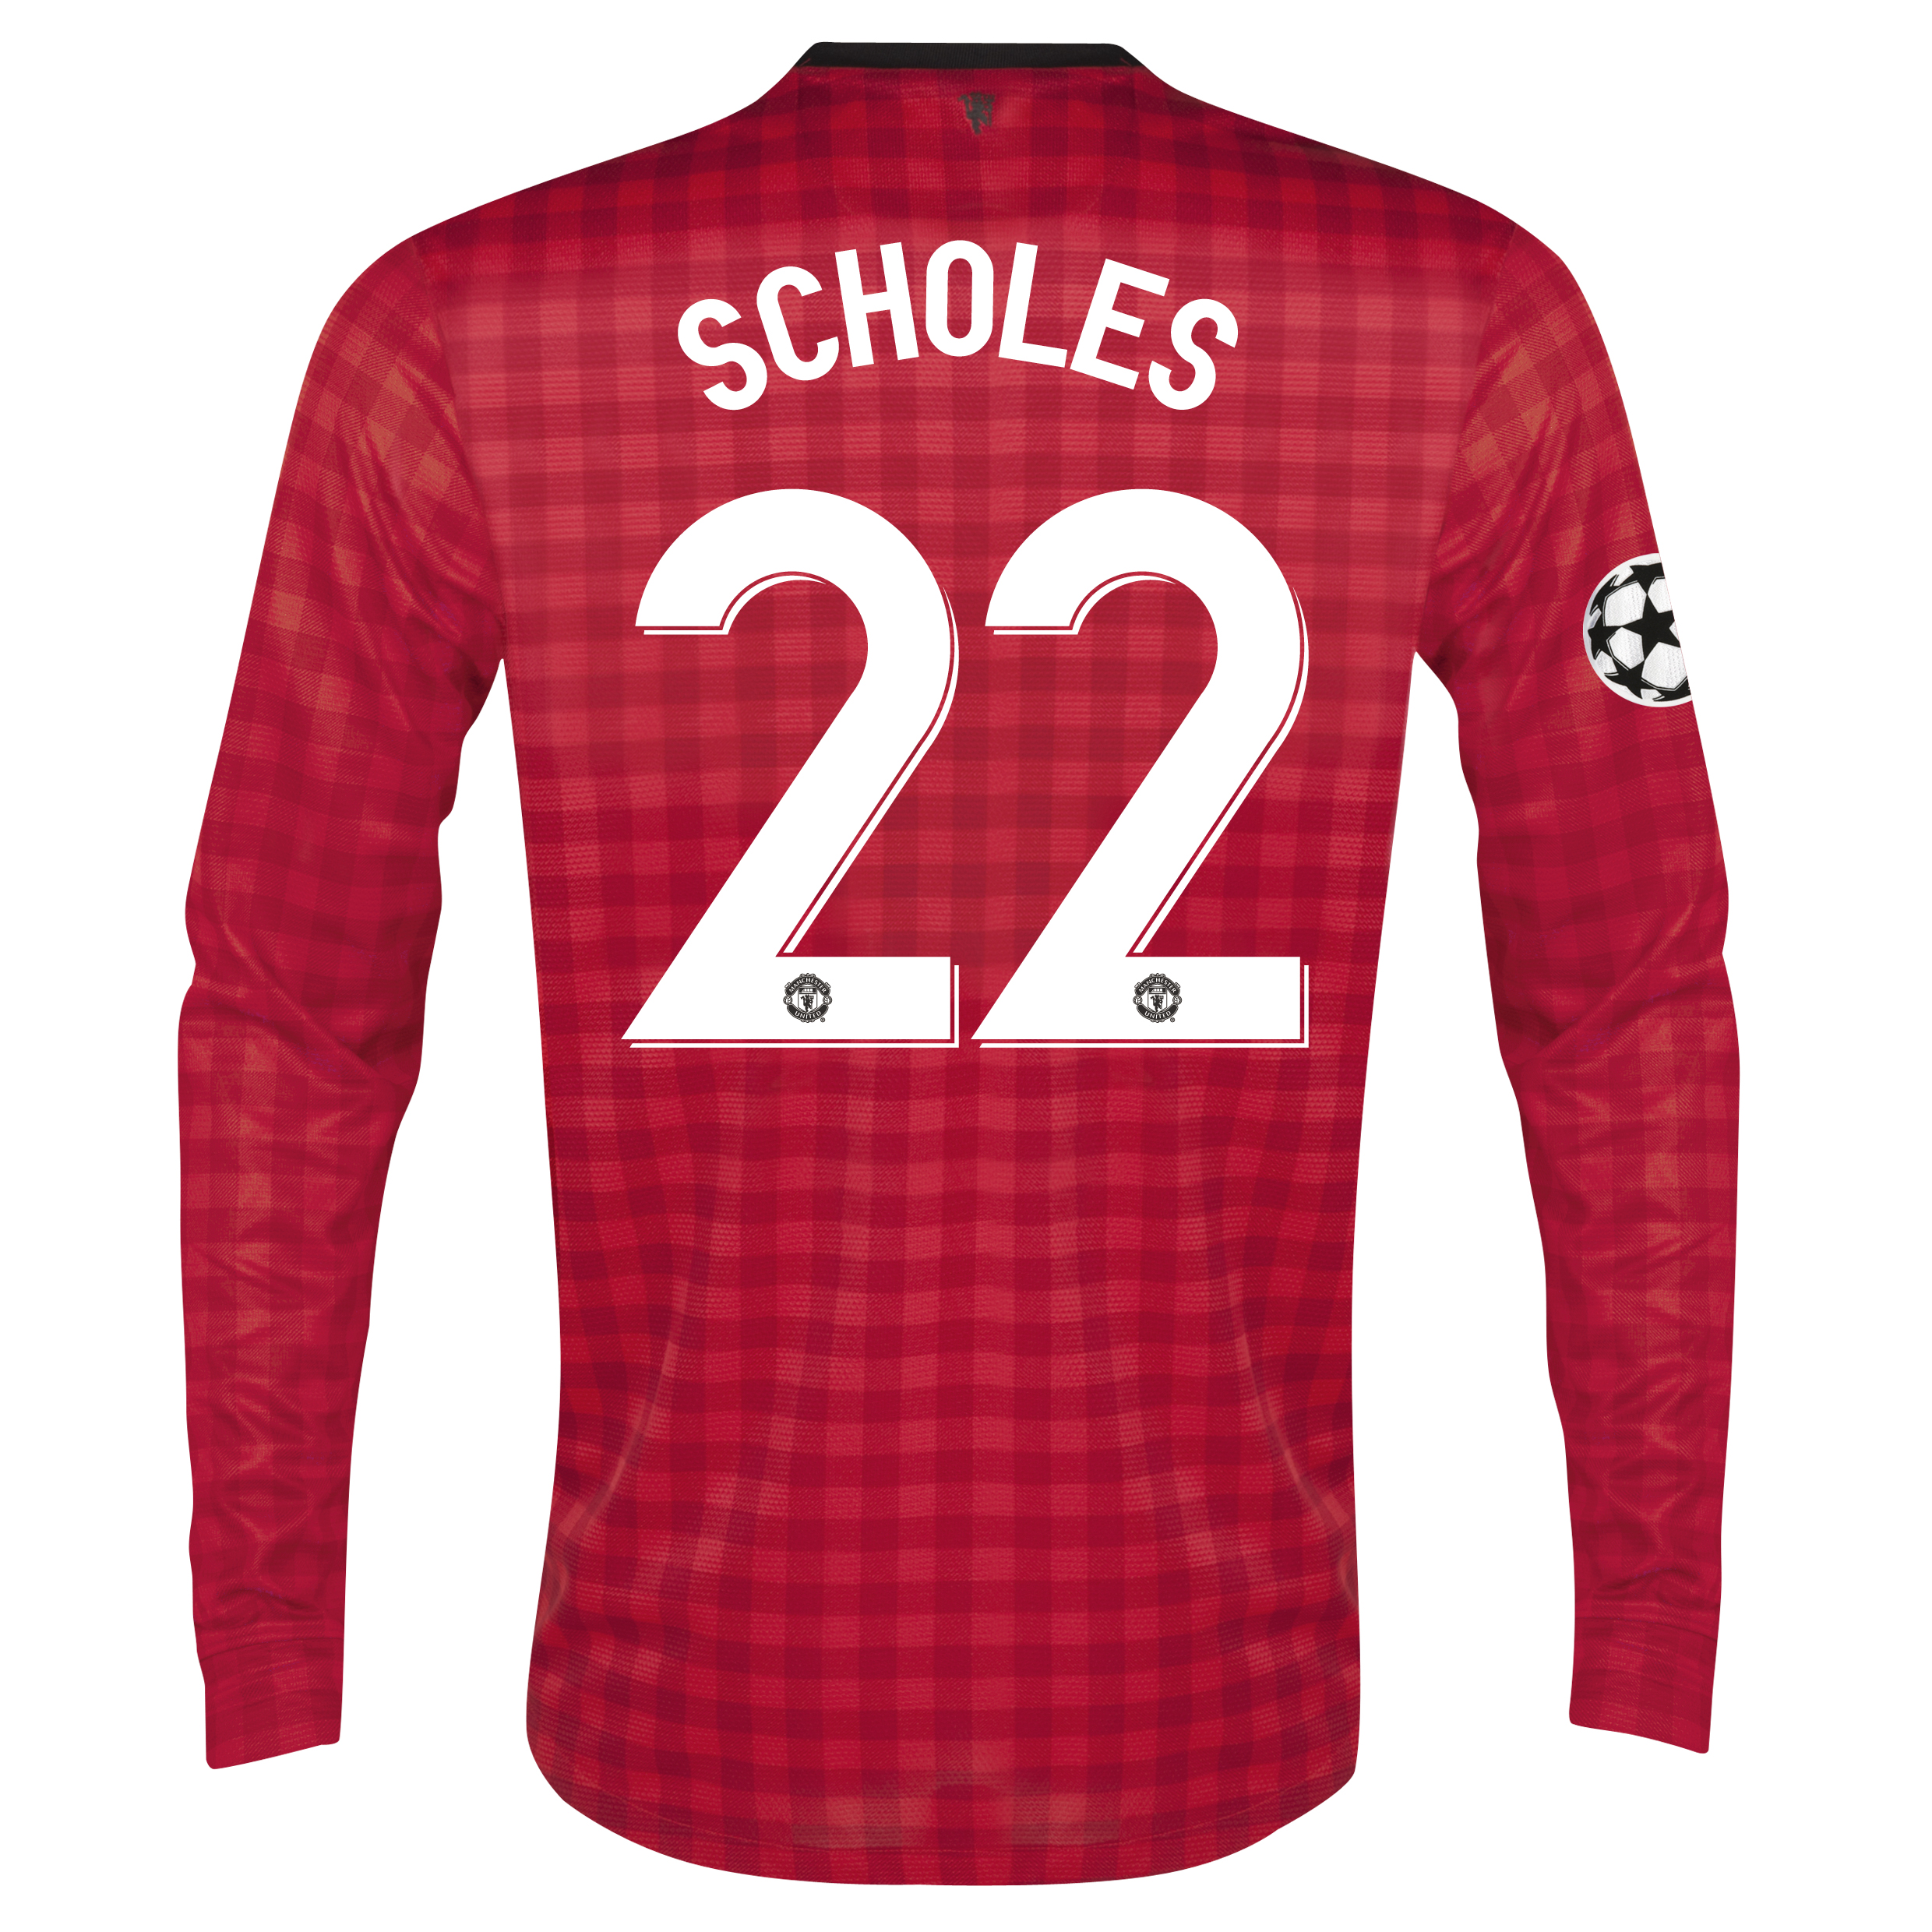 Man United UEFA Champions League Home Shirt 2012/13 - Long Sleeved with Scholes 22 printing